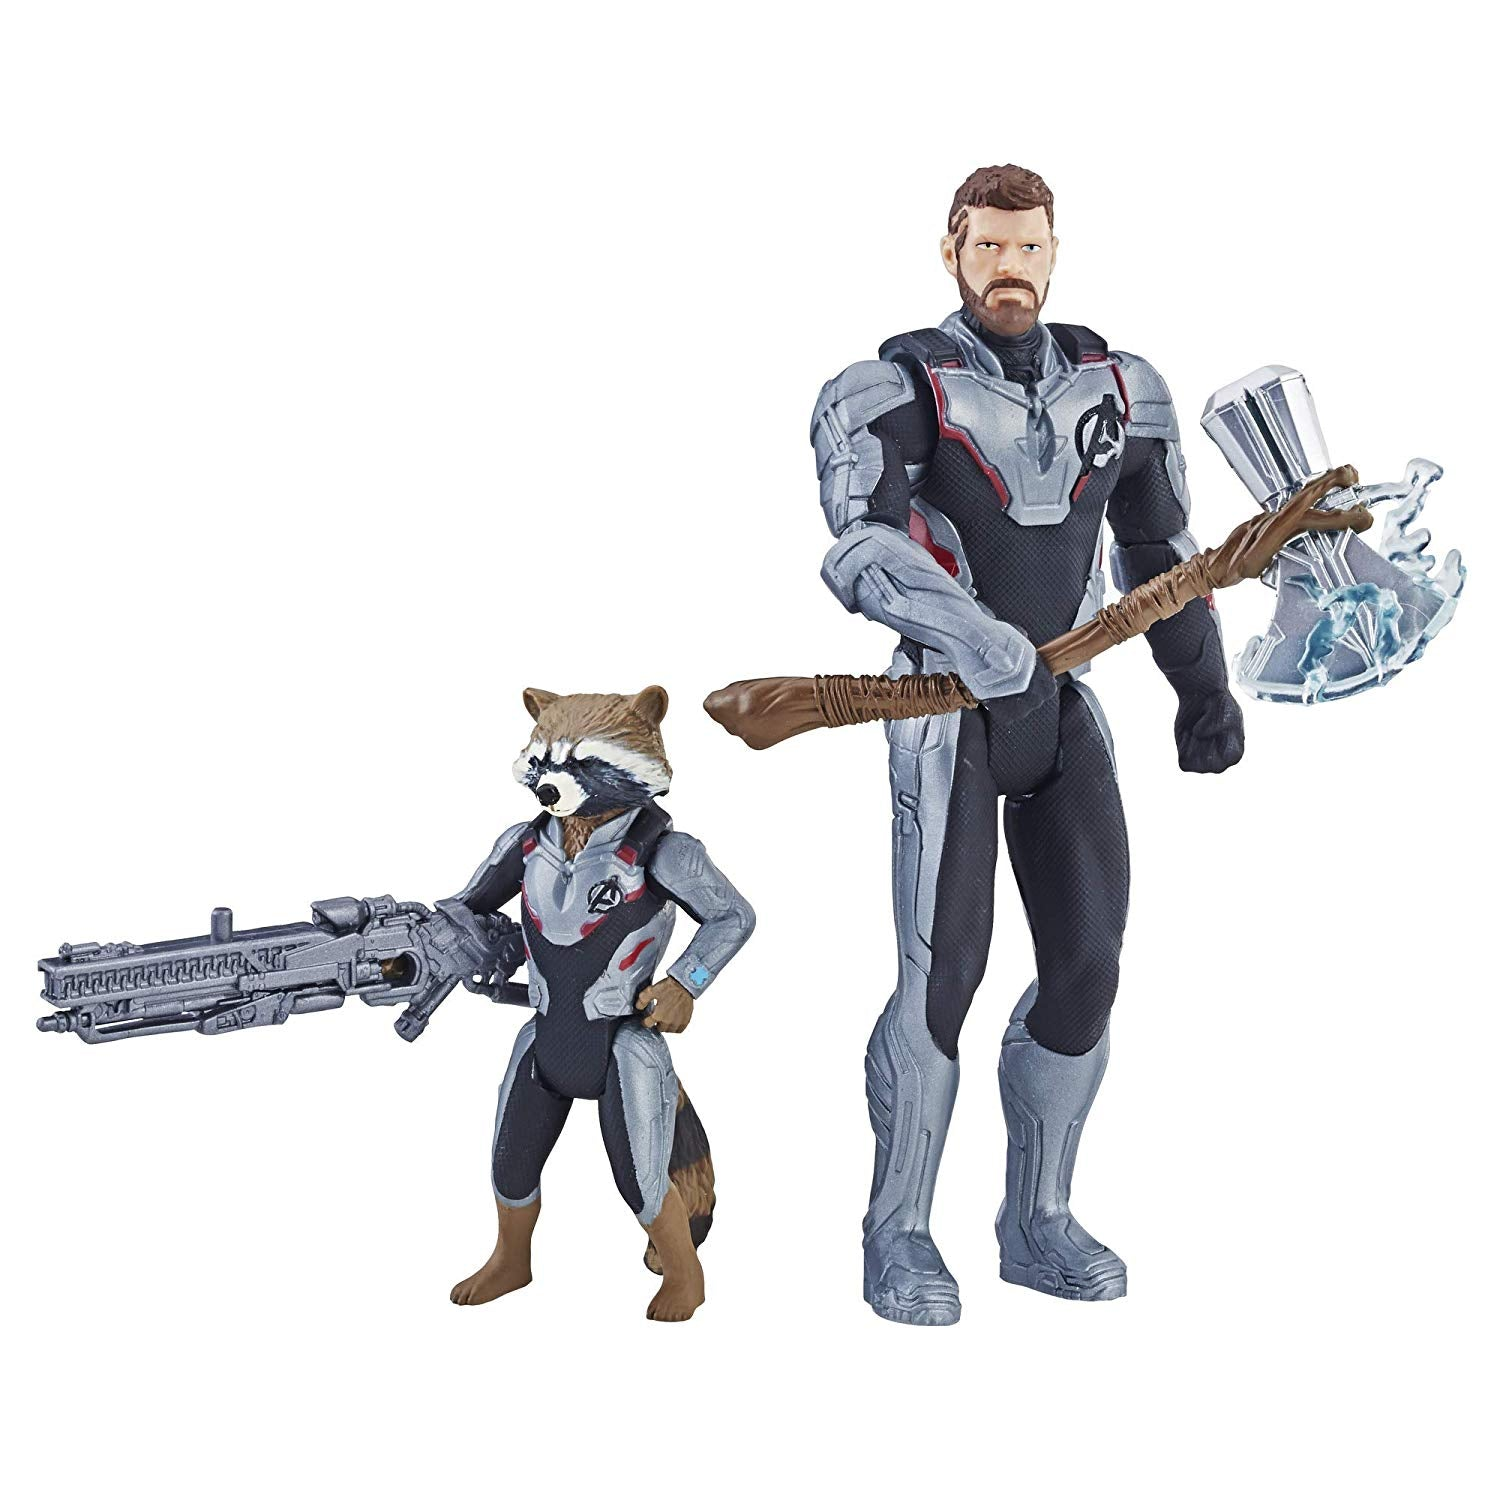 Avengers Endgame Thor & Rocket 6 inch Figures 2 Pack by Hasbro